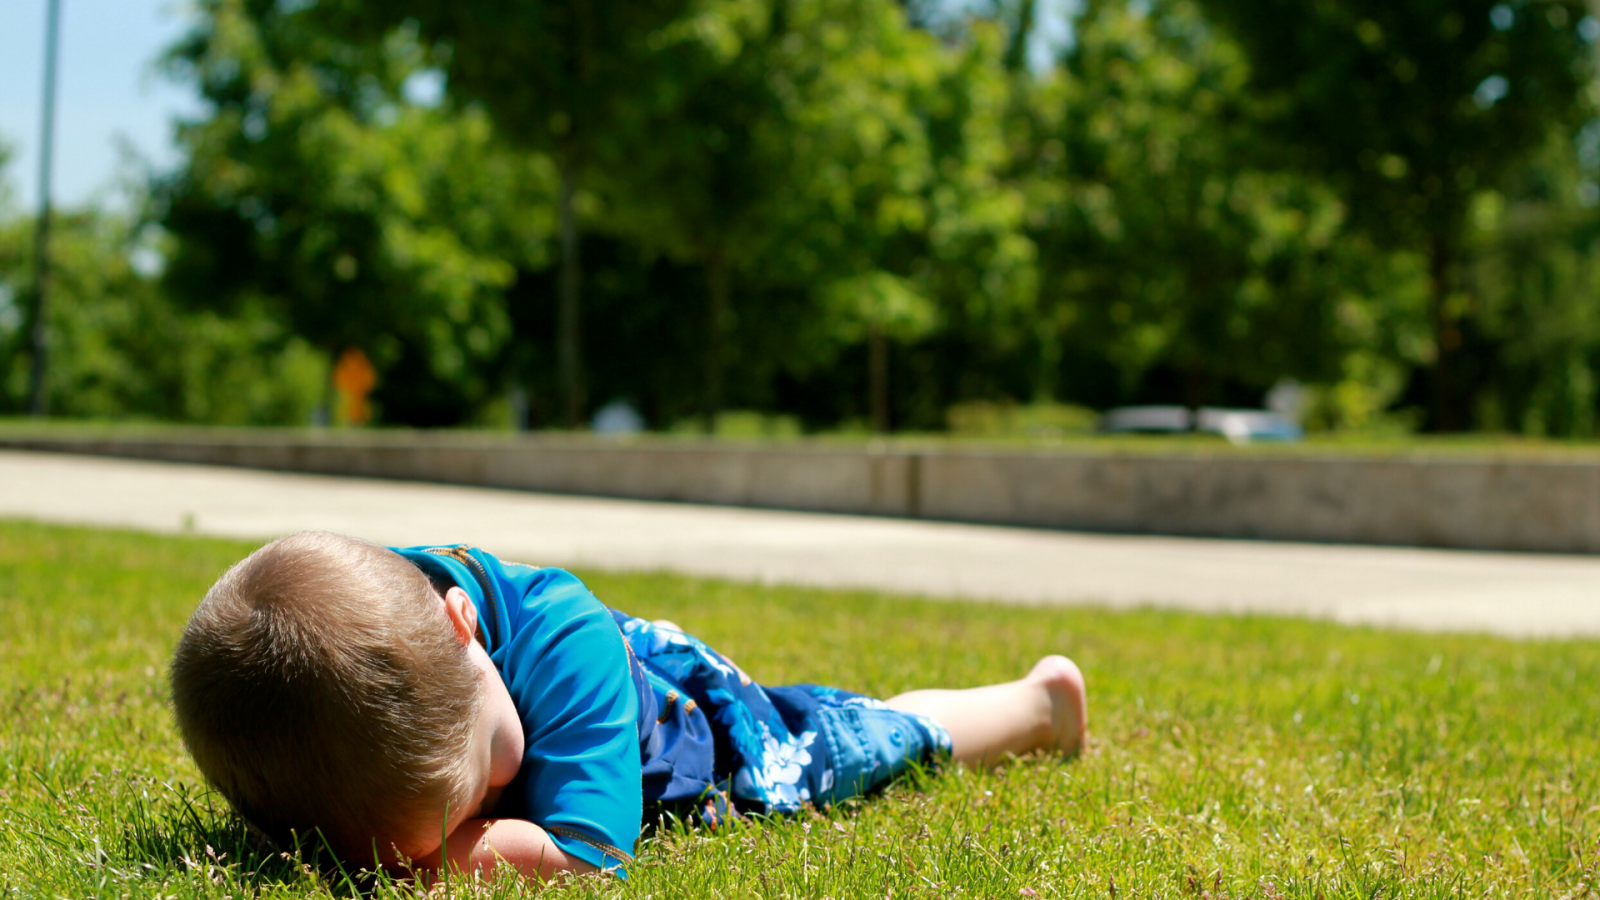 A child's behavior causing him to collapse on the grass.